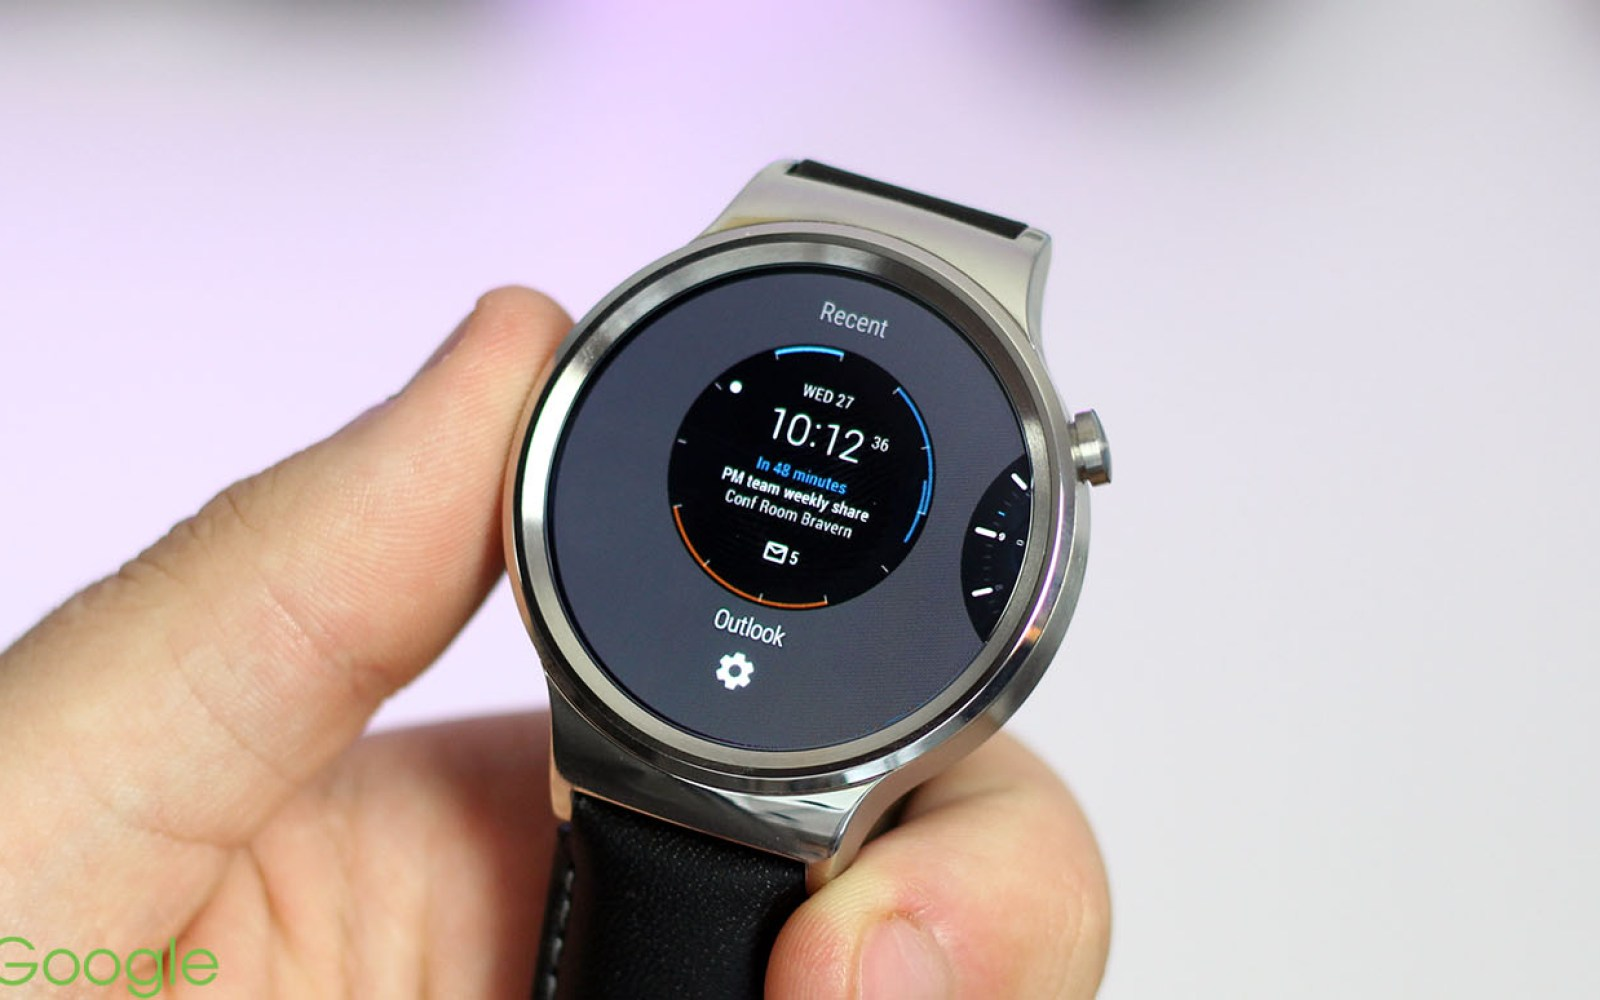 Quick hands-on with Microsoft's new Outlook watch face for Android Wear [Gallery]